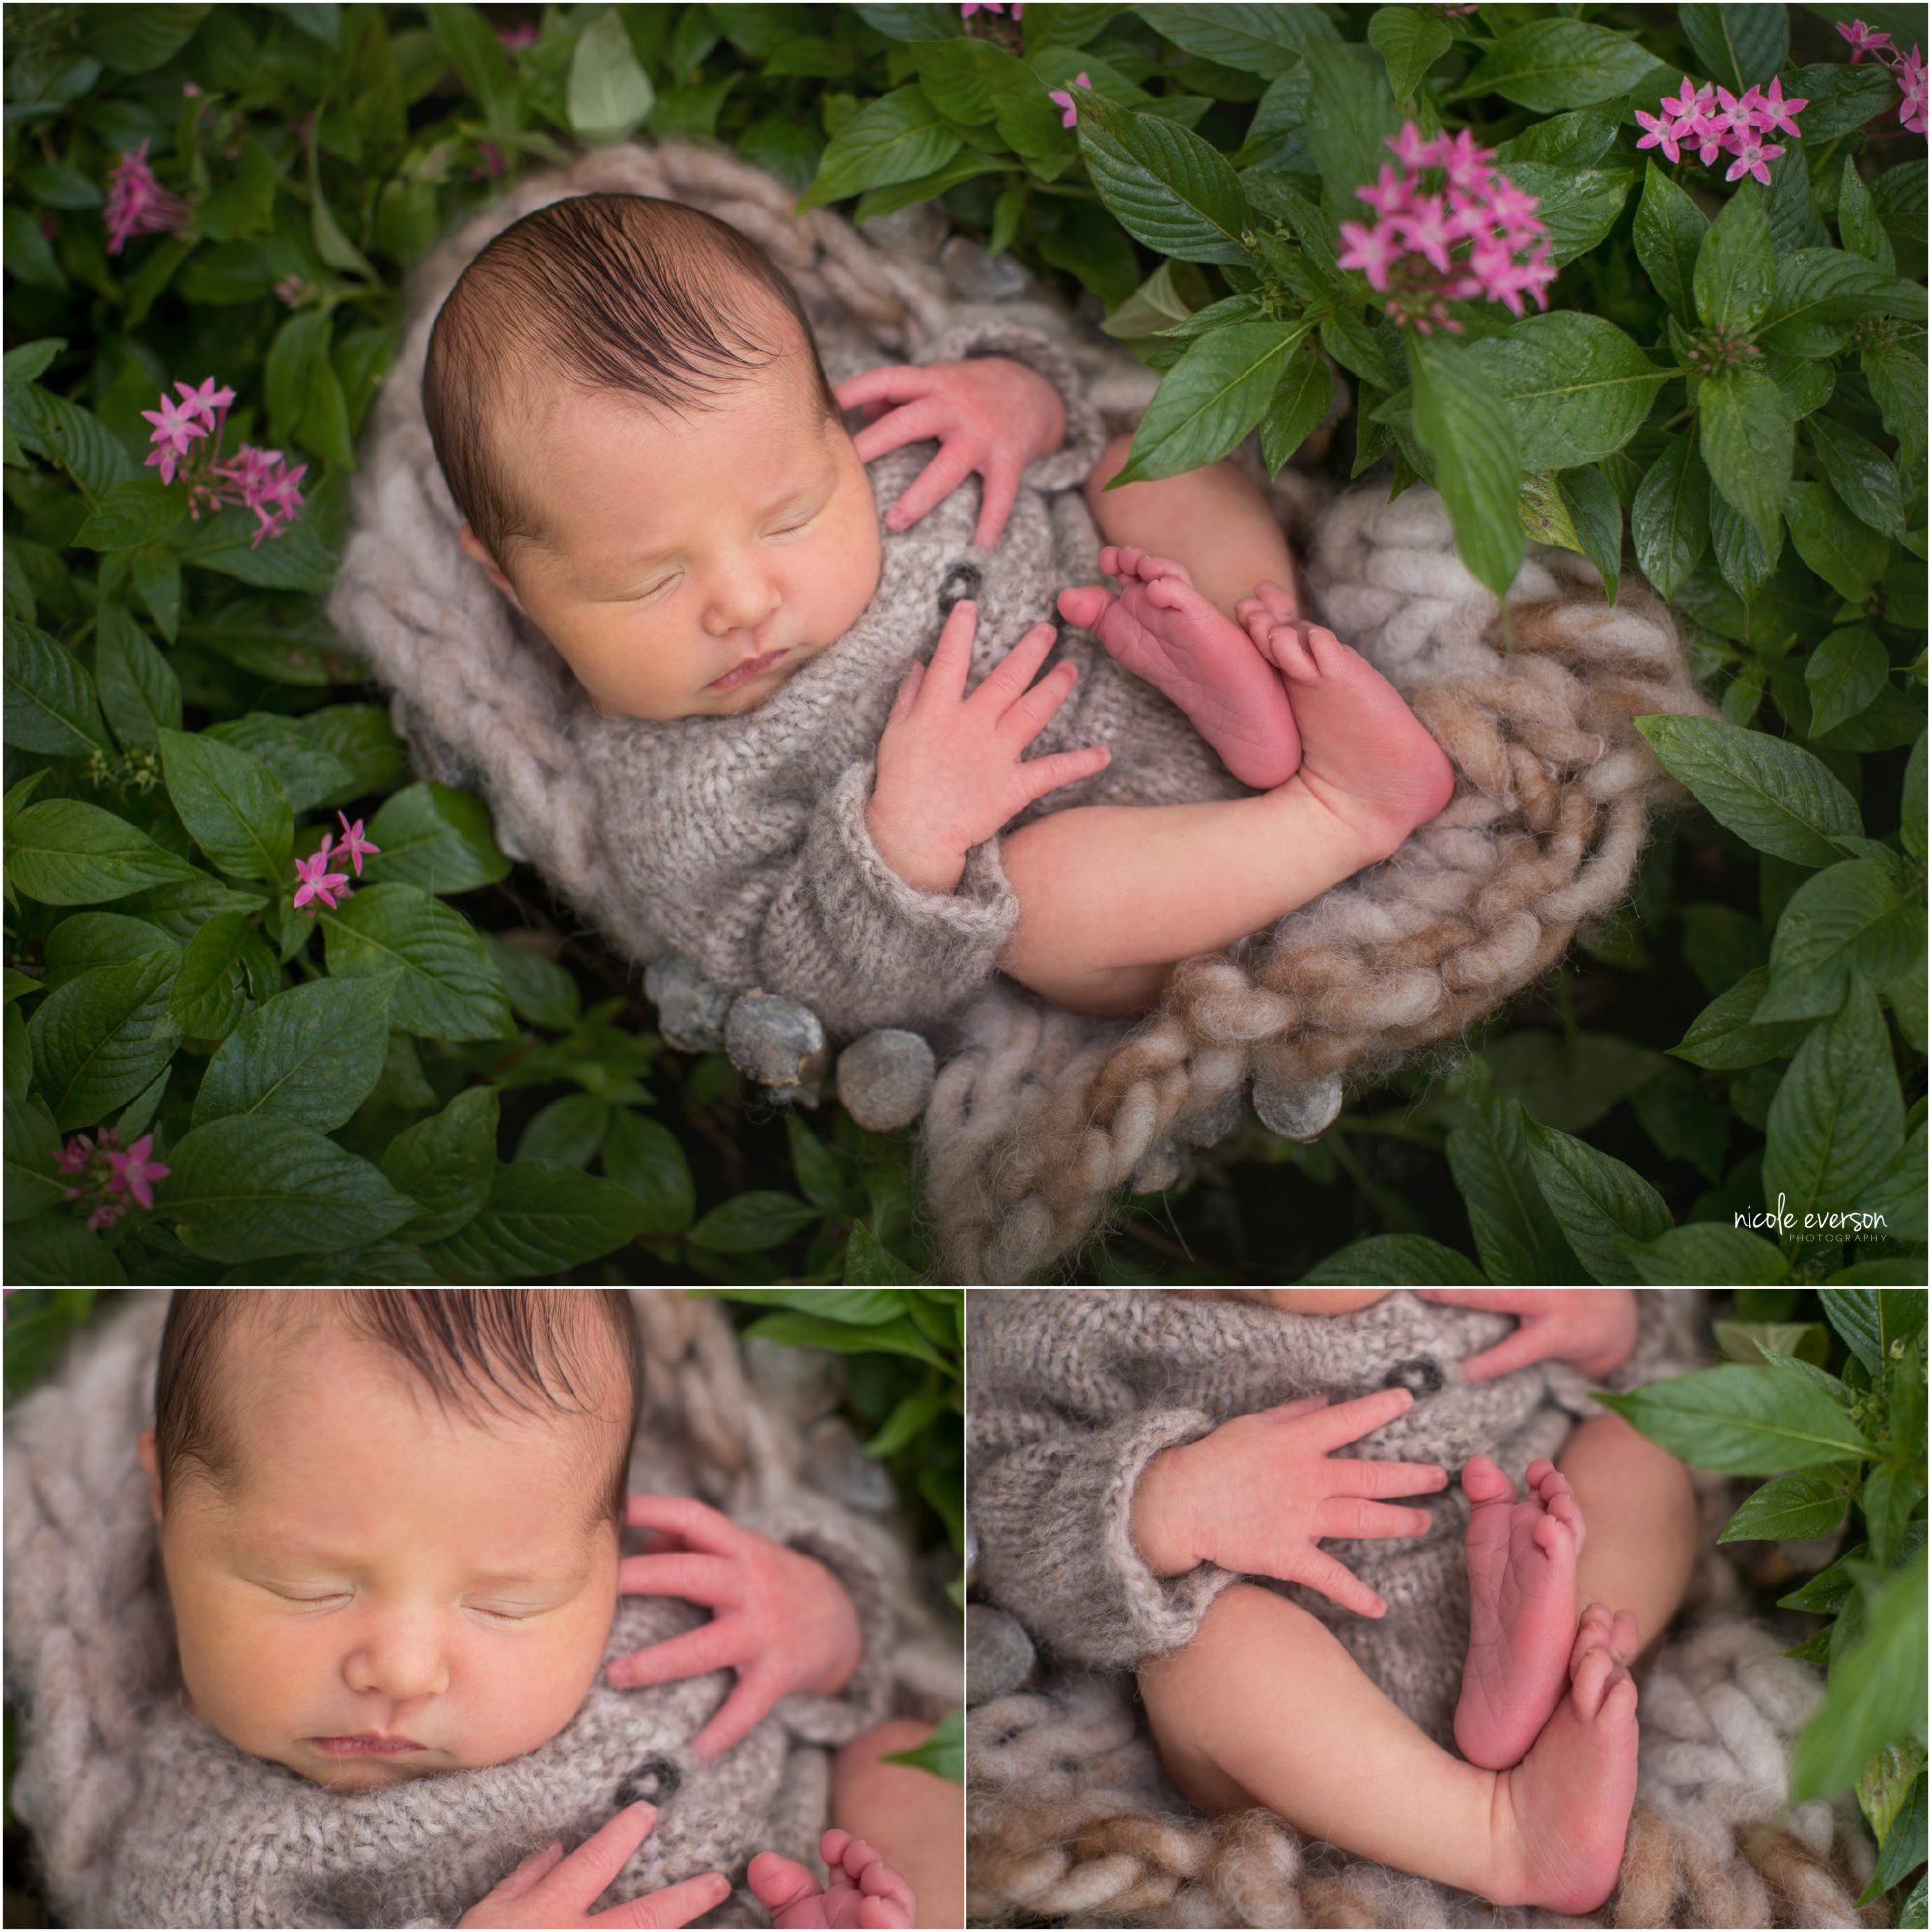 Niceville newborn photographer. Newborn baby girl in a flower patch. Newborn in knit outfit. Nicole Everson Photography.